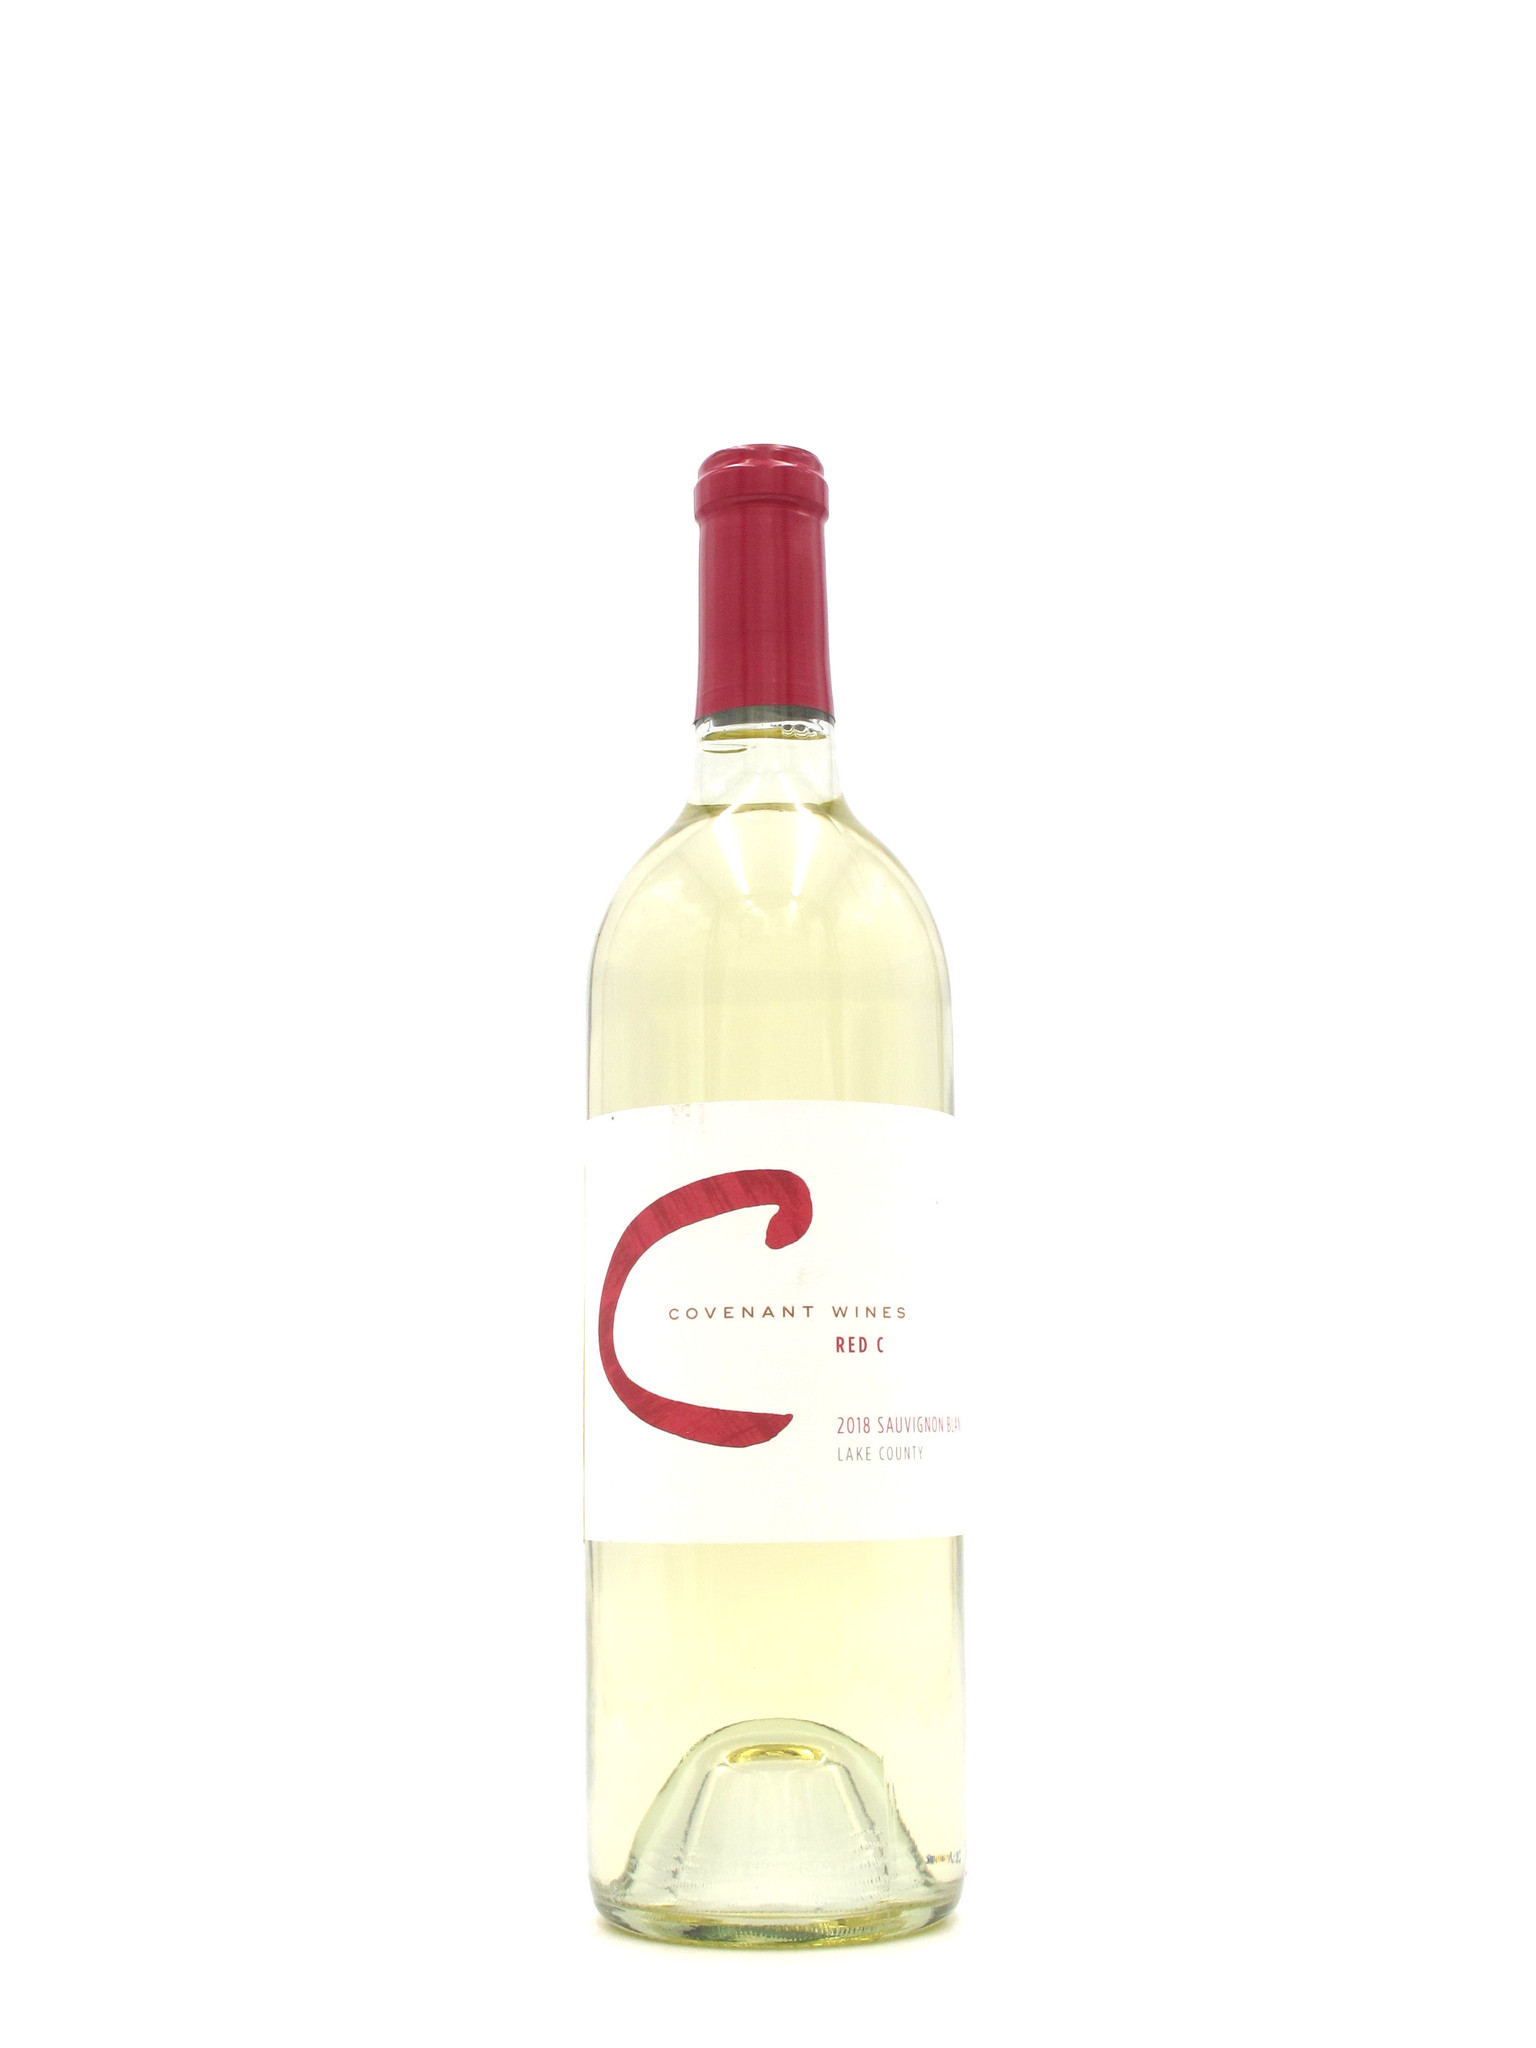 "Covenant 2018 Covenant Wines ""Red C"" Sauvignon Blanc Dry Creek Valley, Sonoma 750ml"